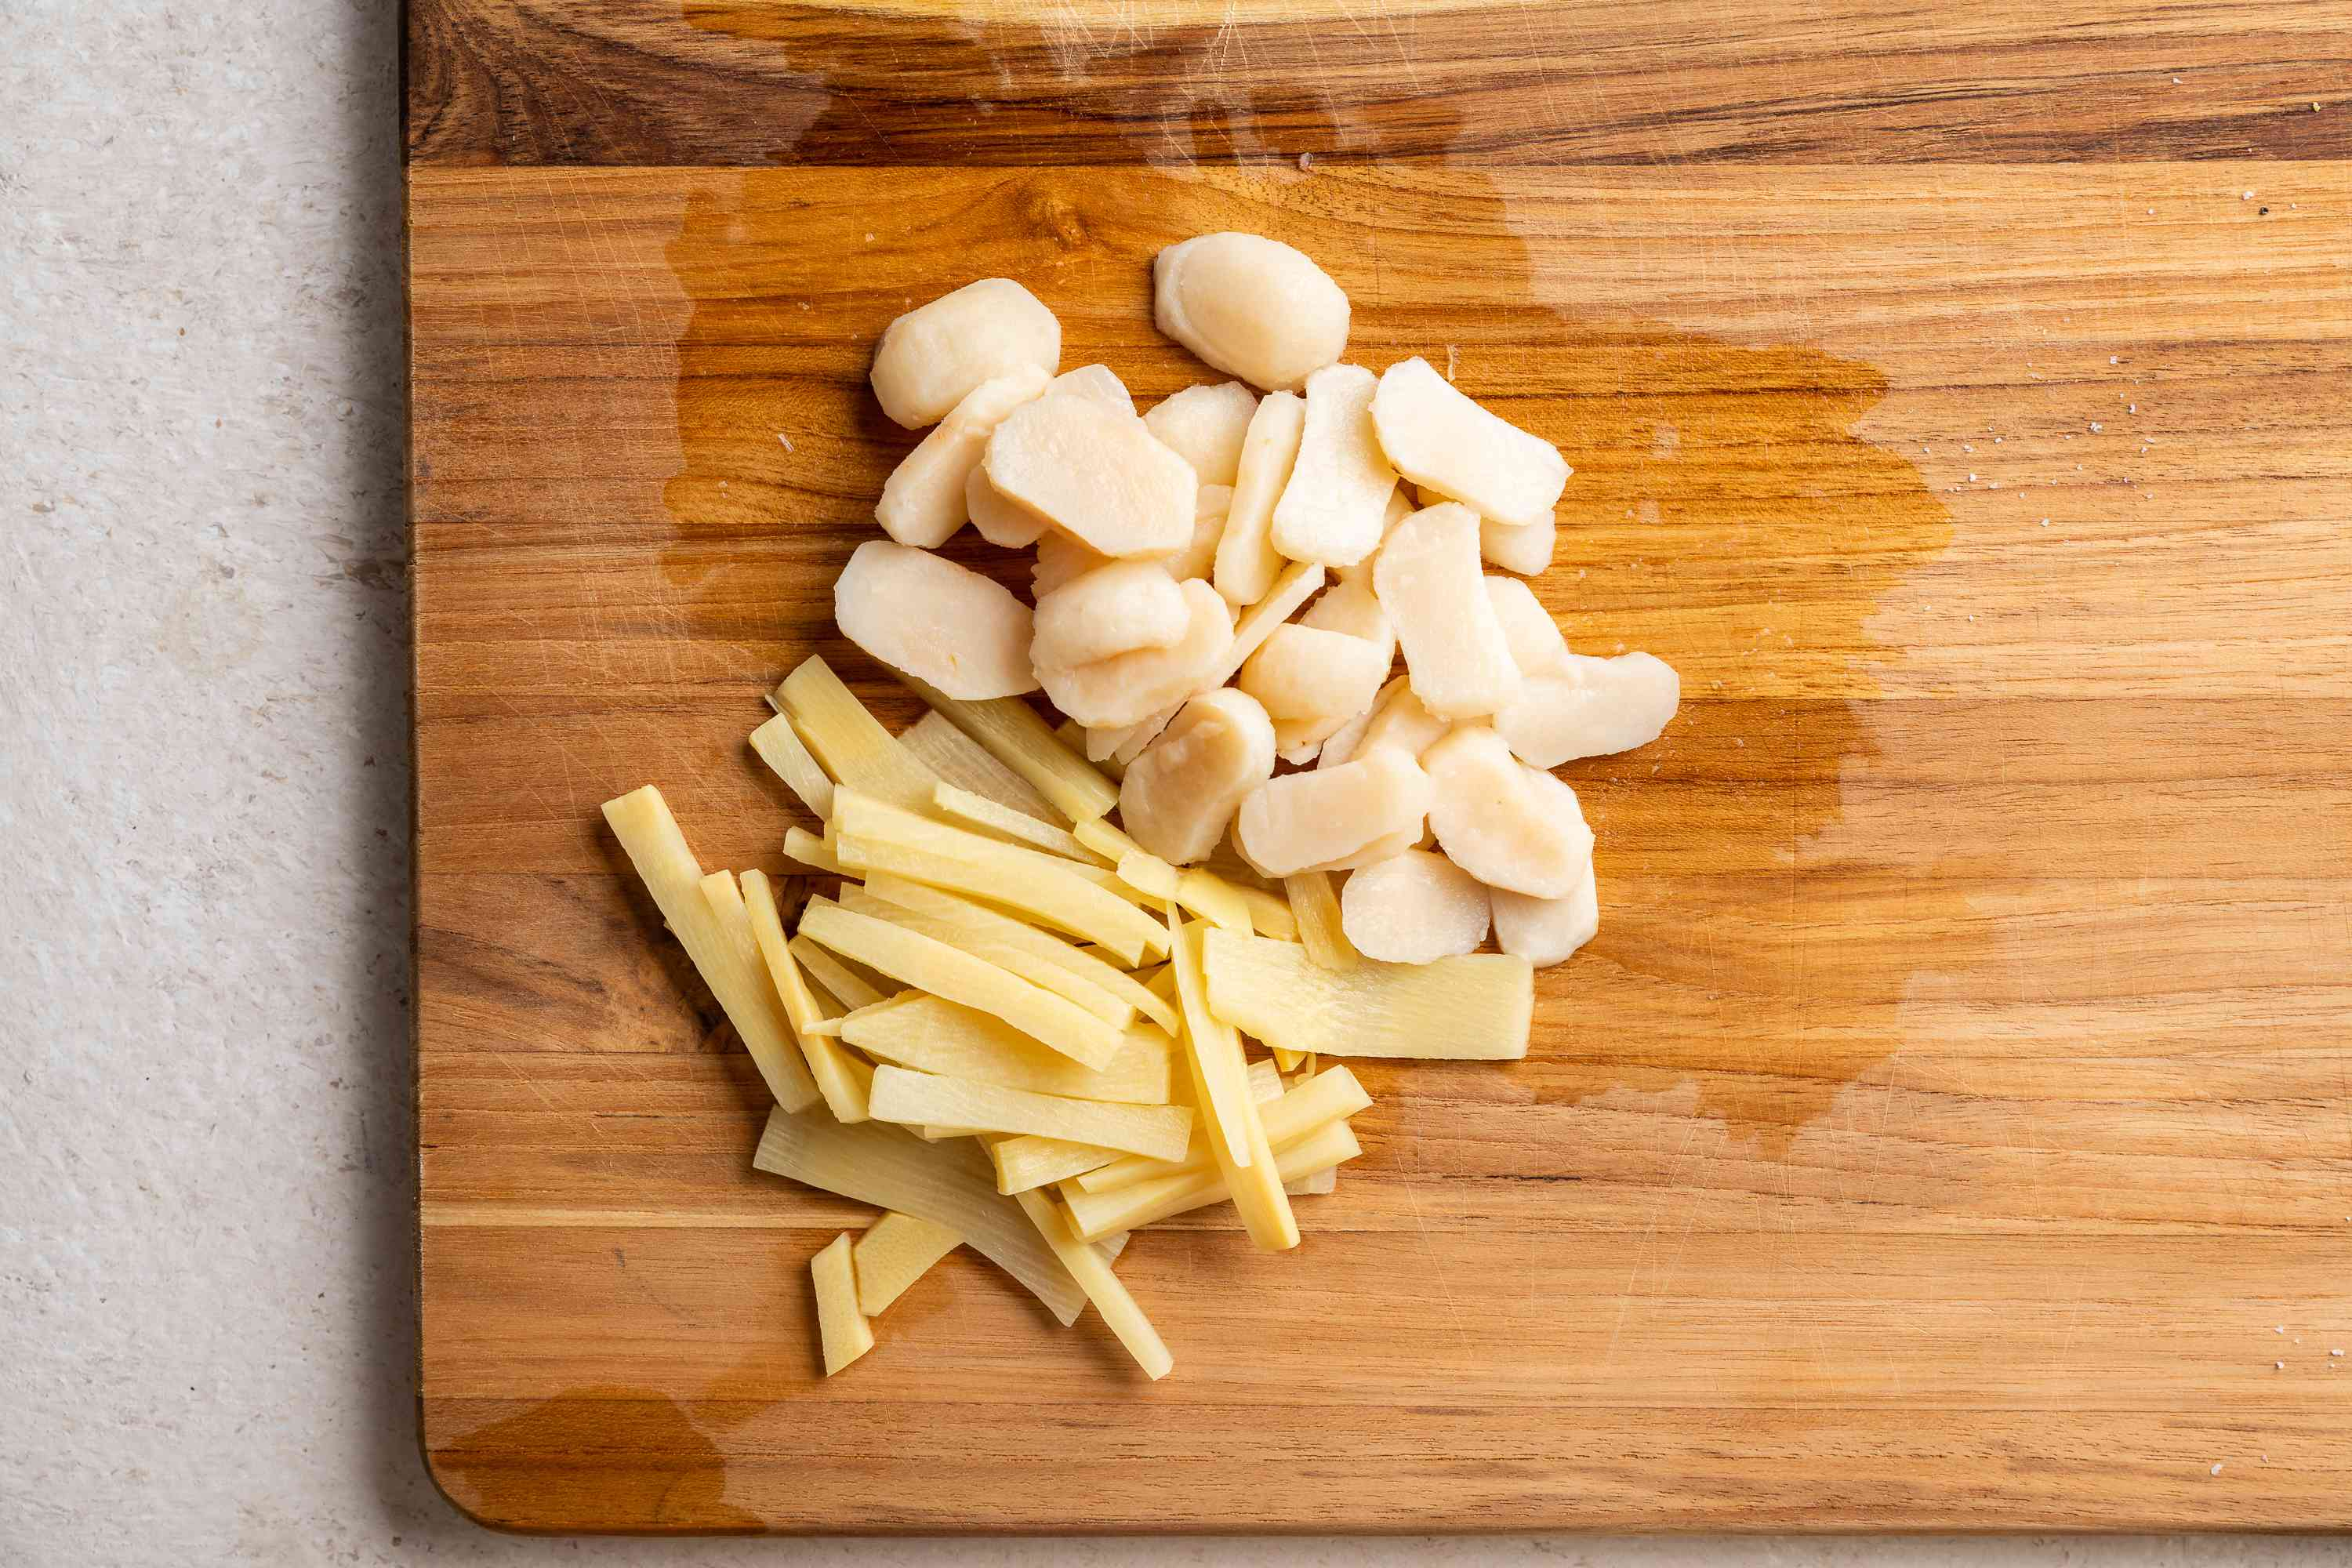 Cut the water chestnuts and bamboo shoots into thin slices